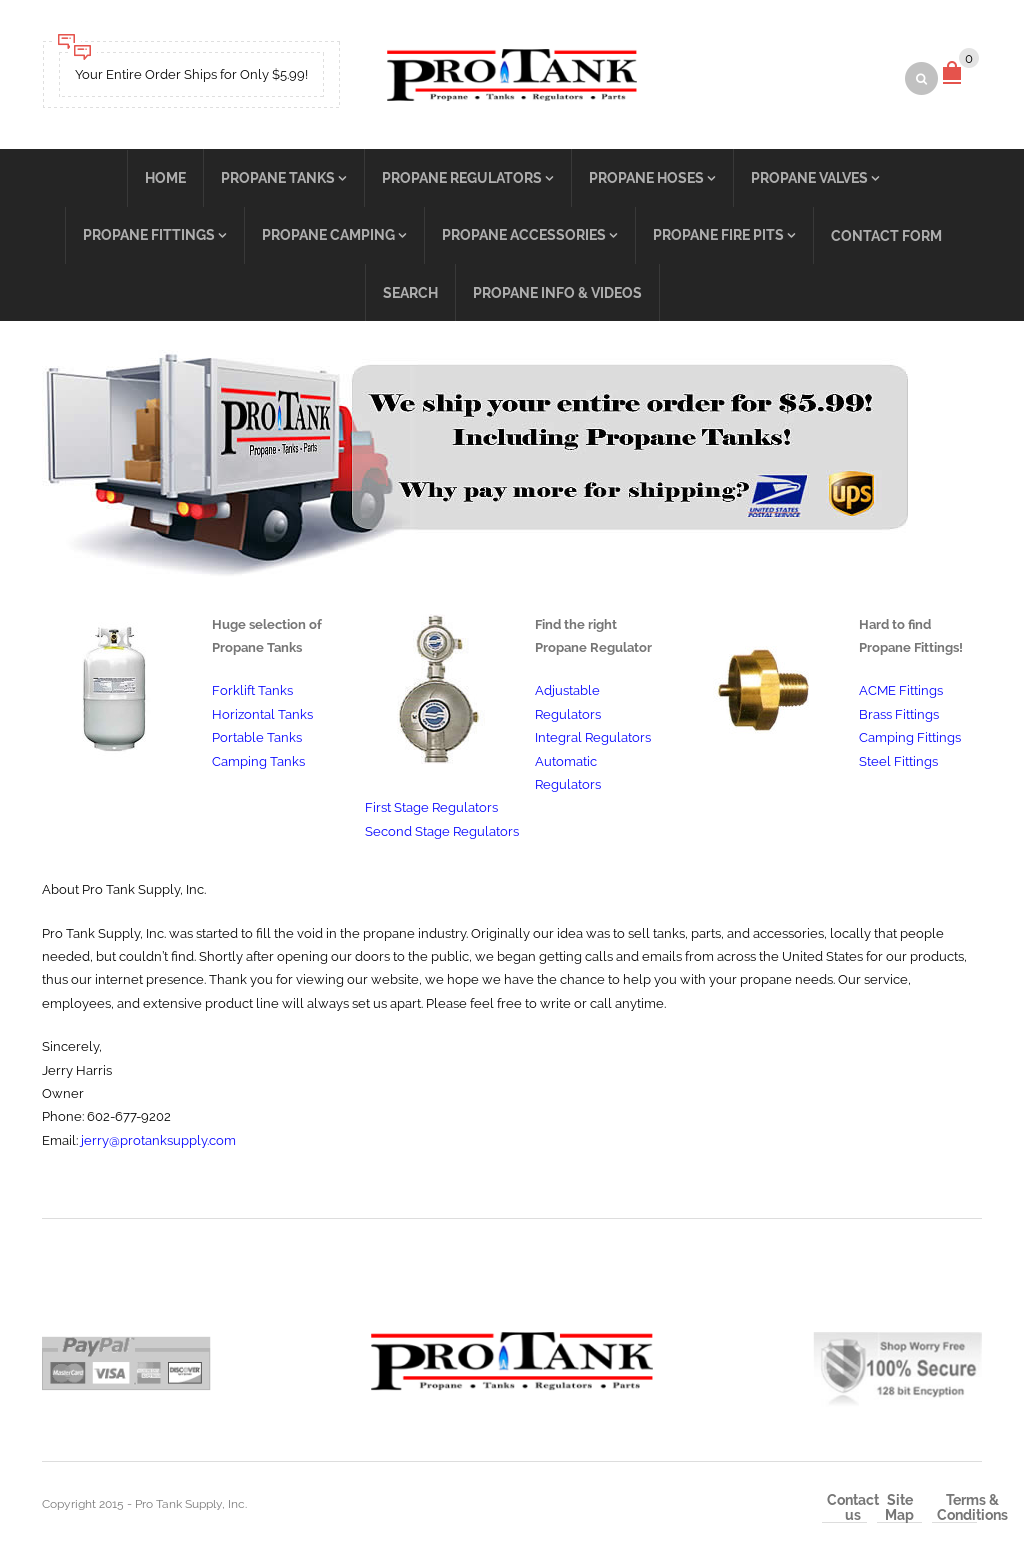 Pro Tank Supply Competitors, Revenue and Employees - Owler